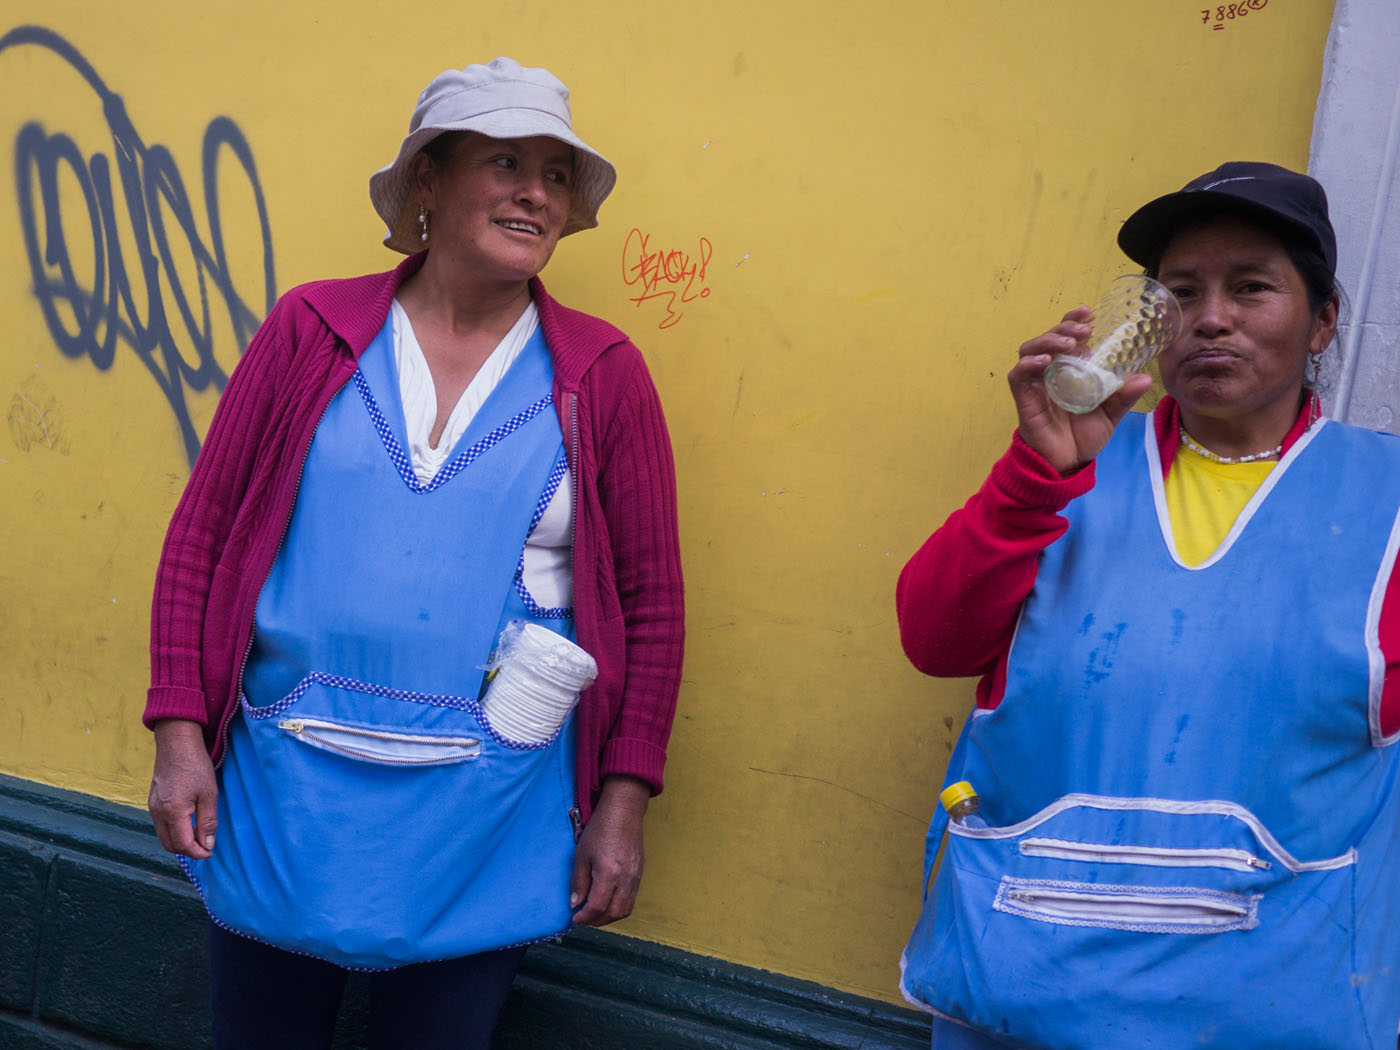 quito-ecuador-travel-streetlife-reisefotos_035